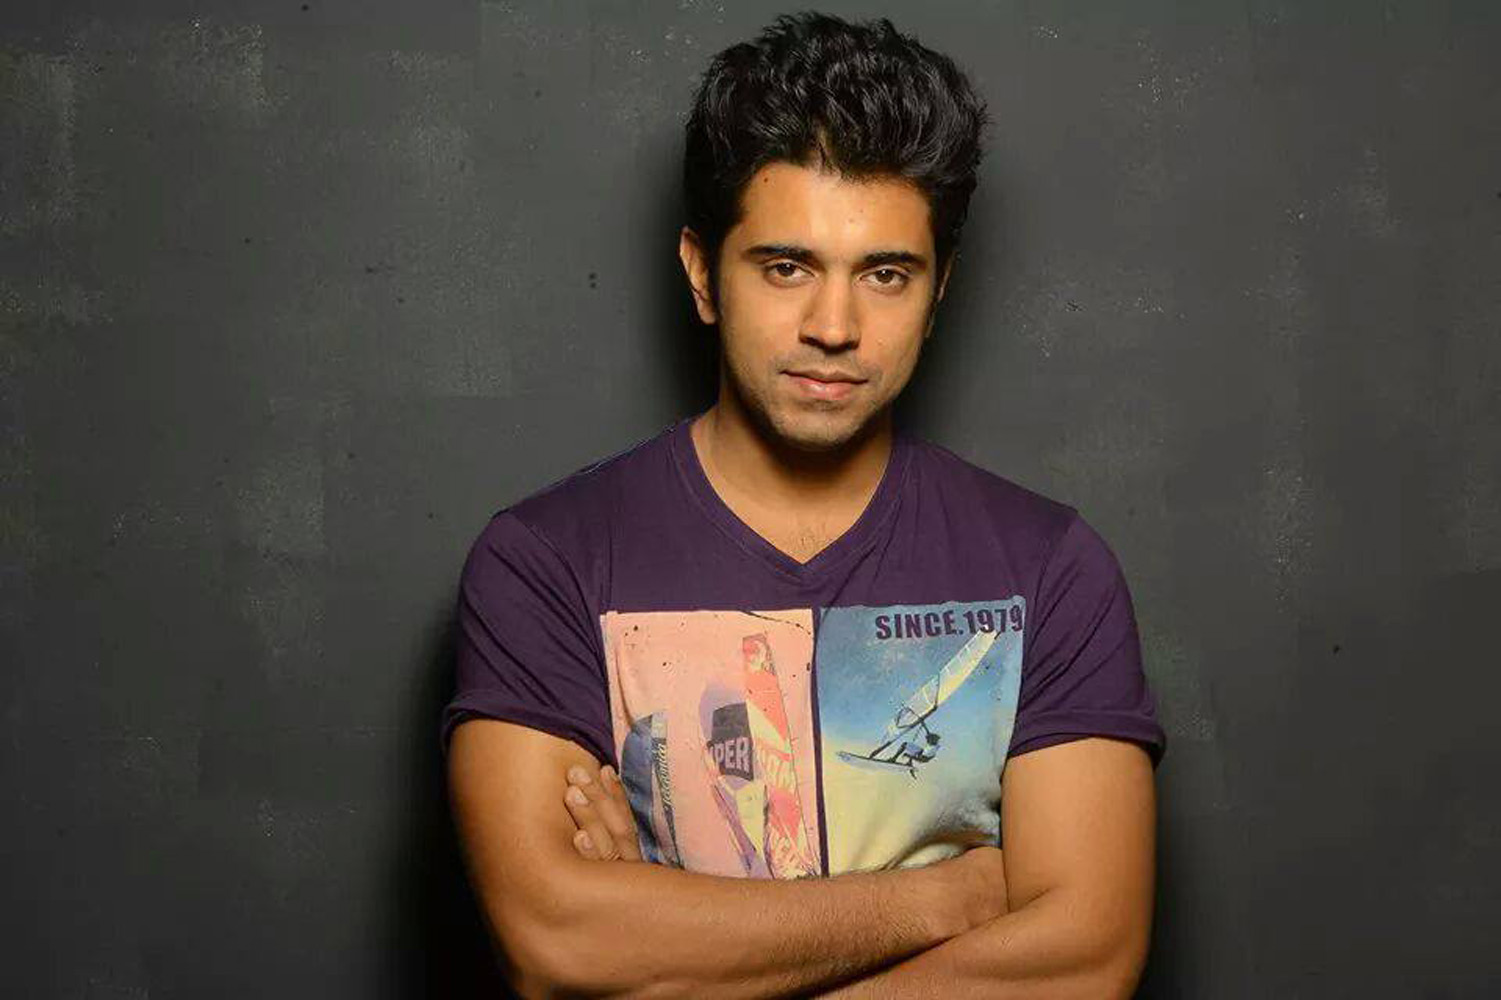 http://onlookersmedia.in/wp-content/uploads/2015/04/Nivin-Pauly-Stills-Images-Photos-Malayalam-Movie-2015-Onlookers-Media-21.jpg